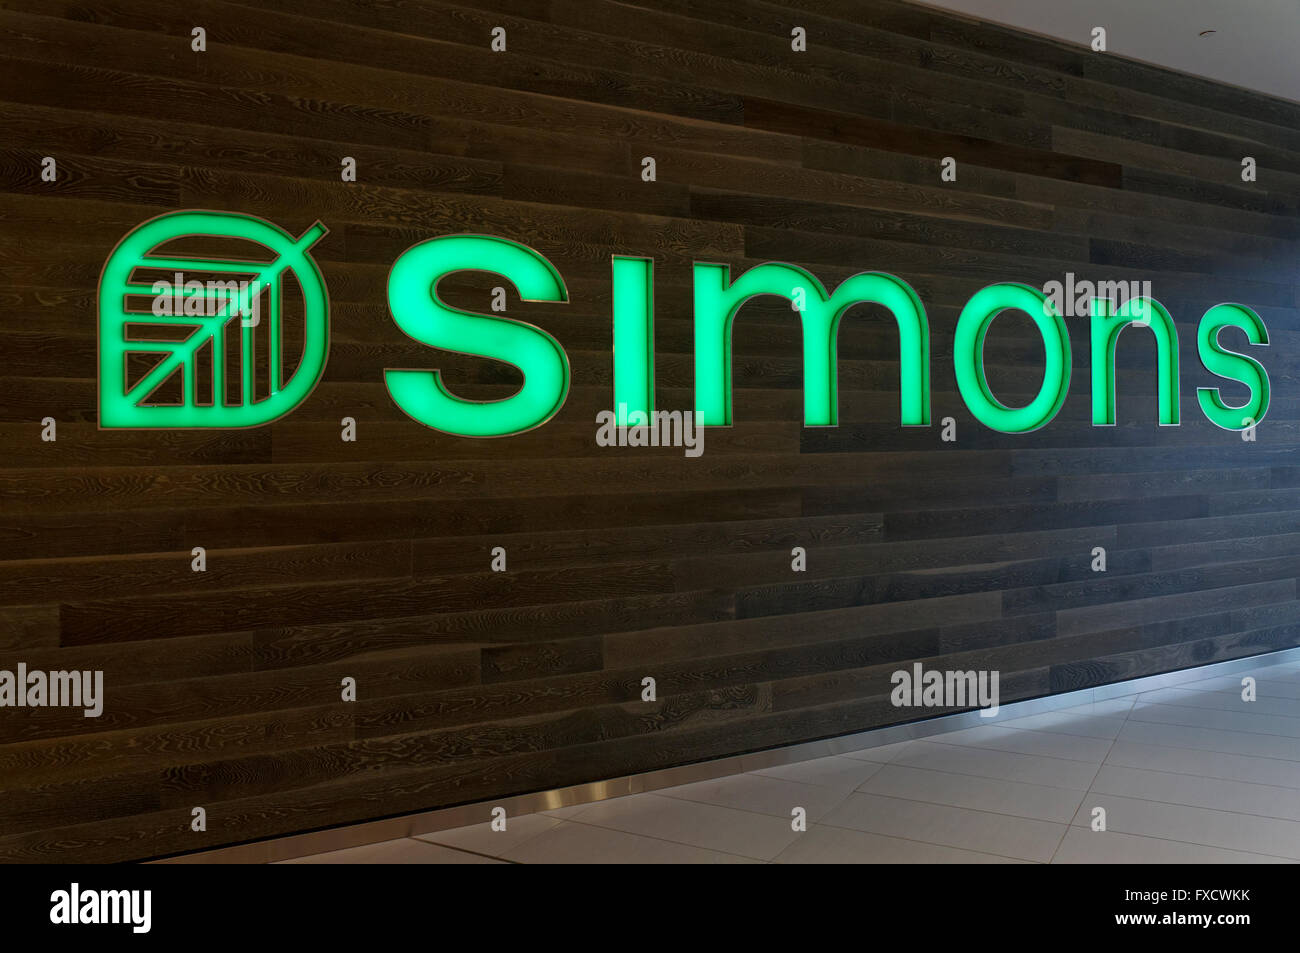 Simons Clothing And Home Decor Store In The Park Royal Shopping Centre,  West Vancouver, British Columbia, Canada